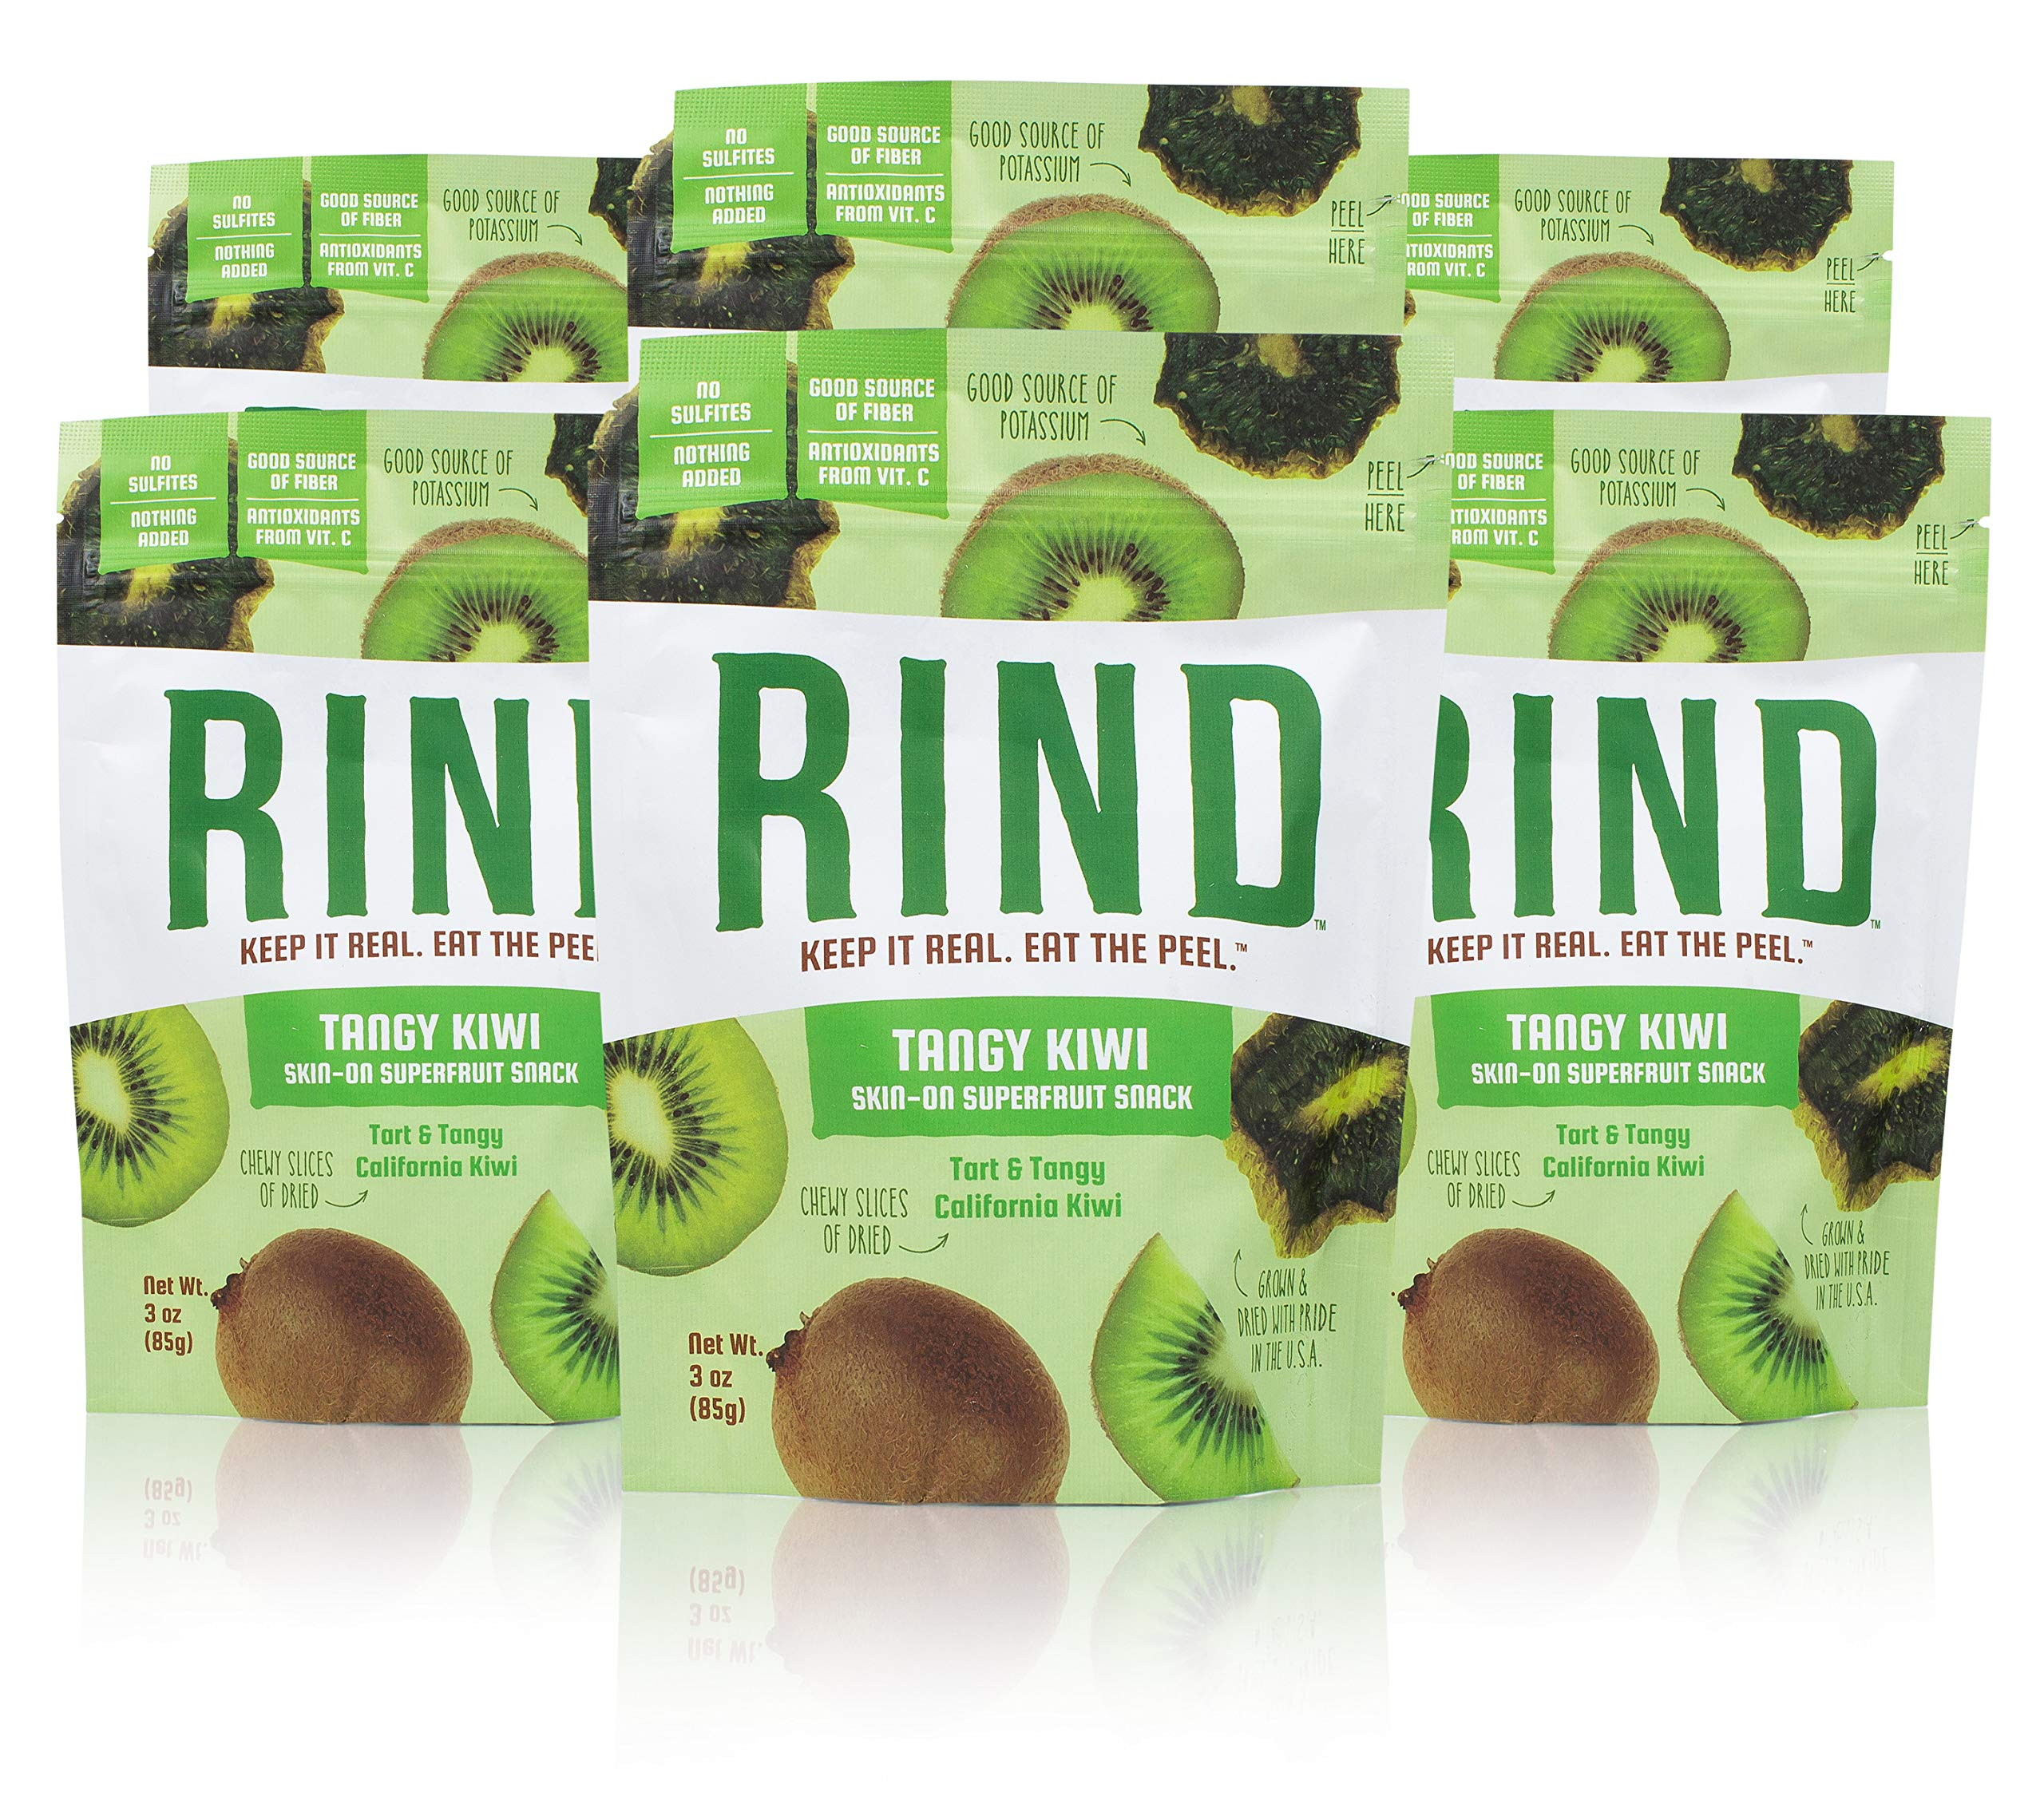 RIND Snacks Tangy Kiwi Sun-Dried Skin-On Superfruit Snack, High Fiber, No Sulfites, Antioxidants from Vitamin C, Non-GMO, Gluten-Free, 3oz Pouch, Pack of 6 by RIND Snacks